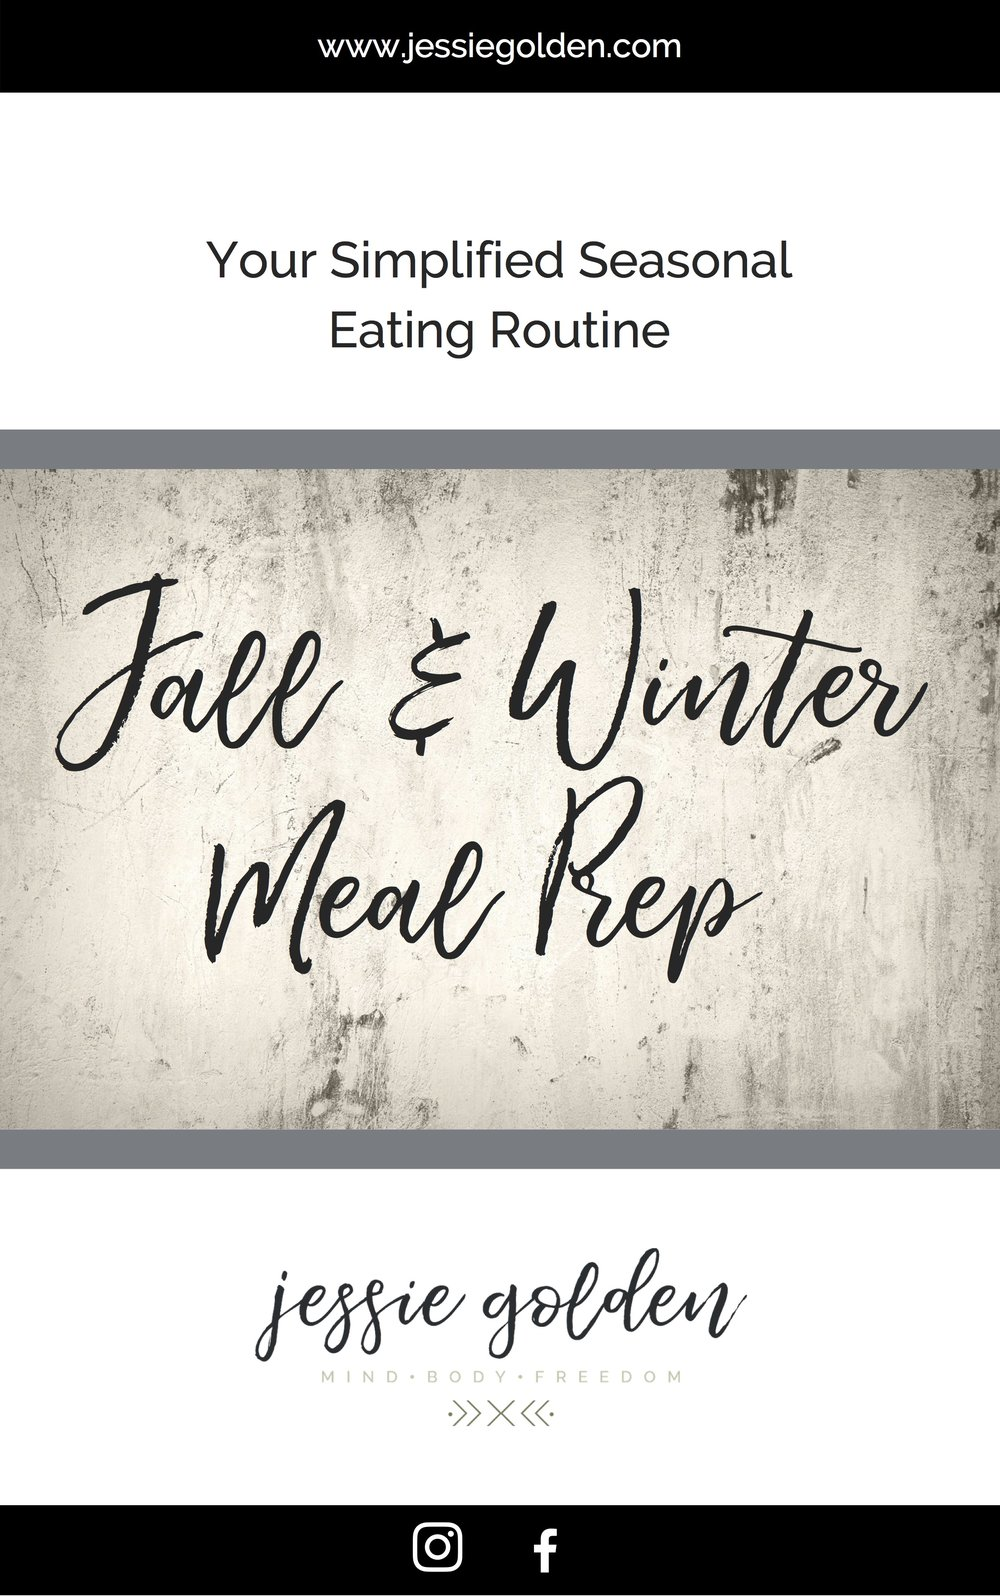 Get your FREE guide to seasonal meal prep when you sign up for my newsletter  here !